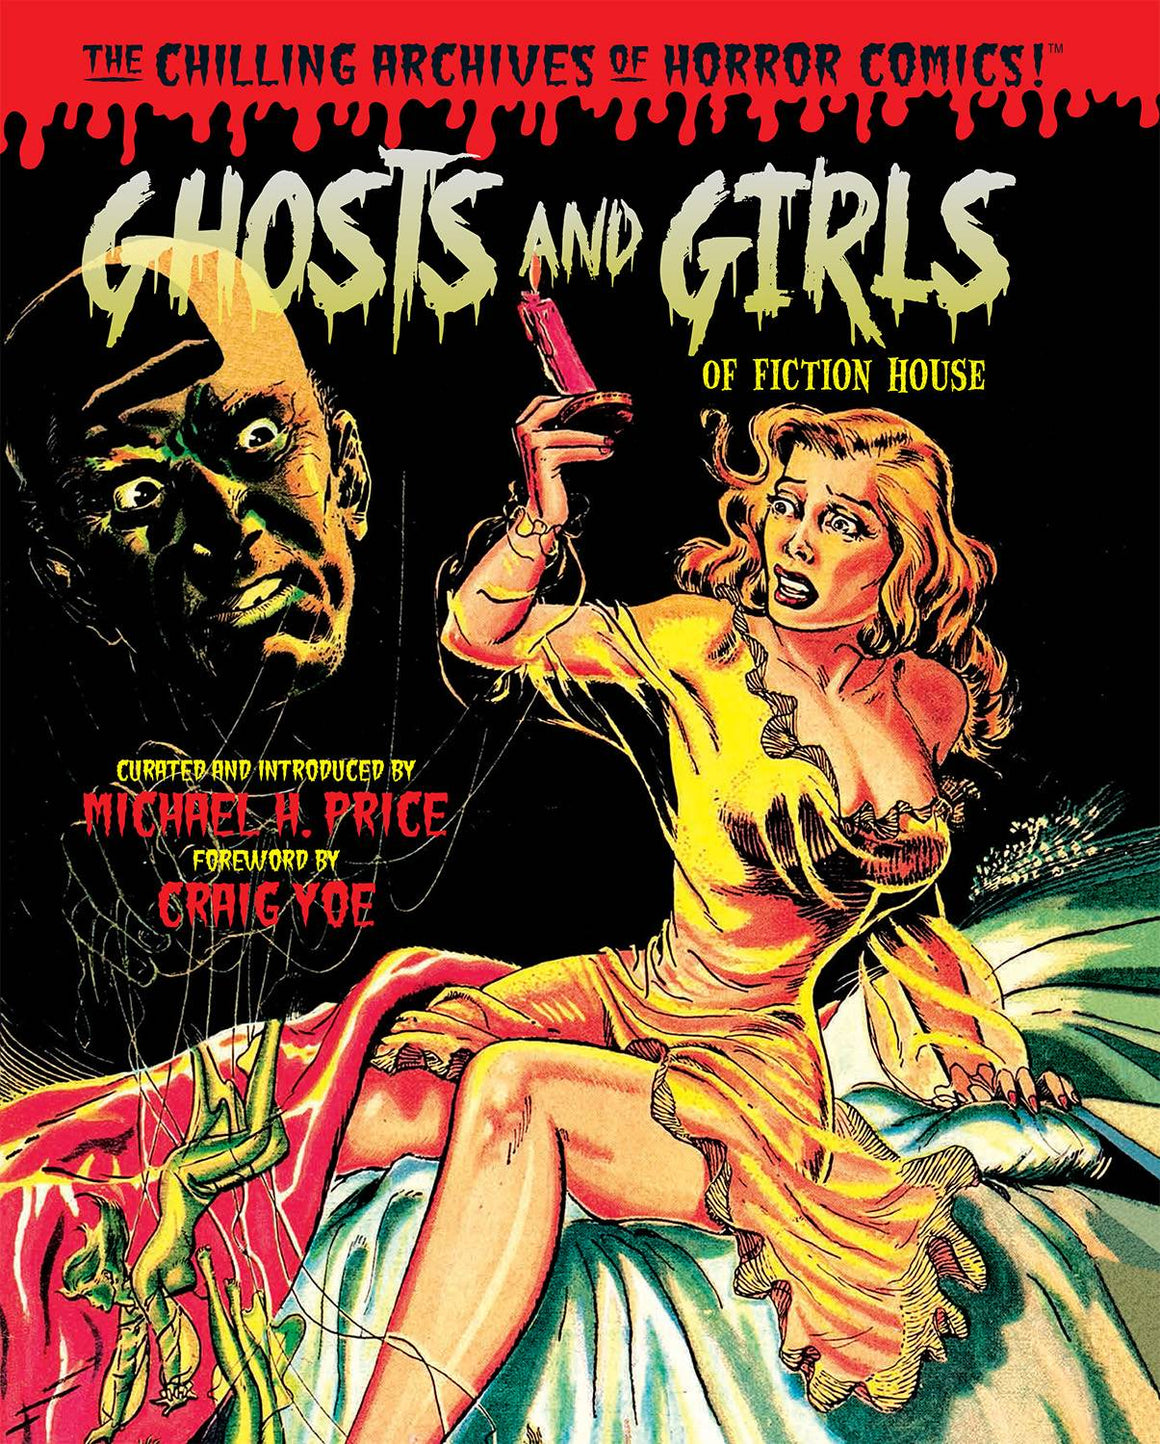 Ghost And Girls of Fiction House